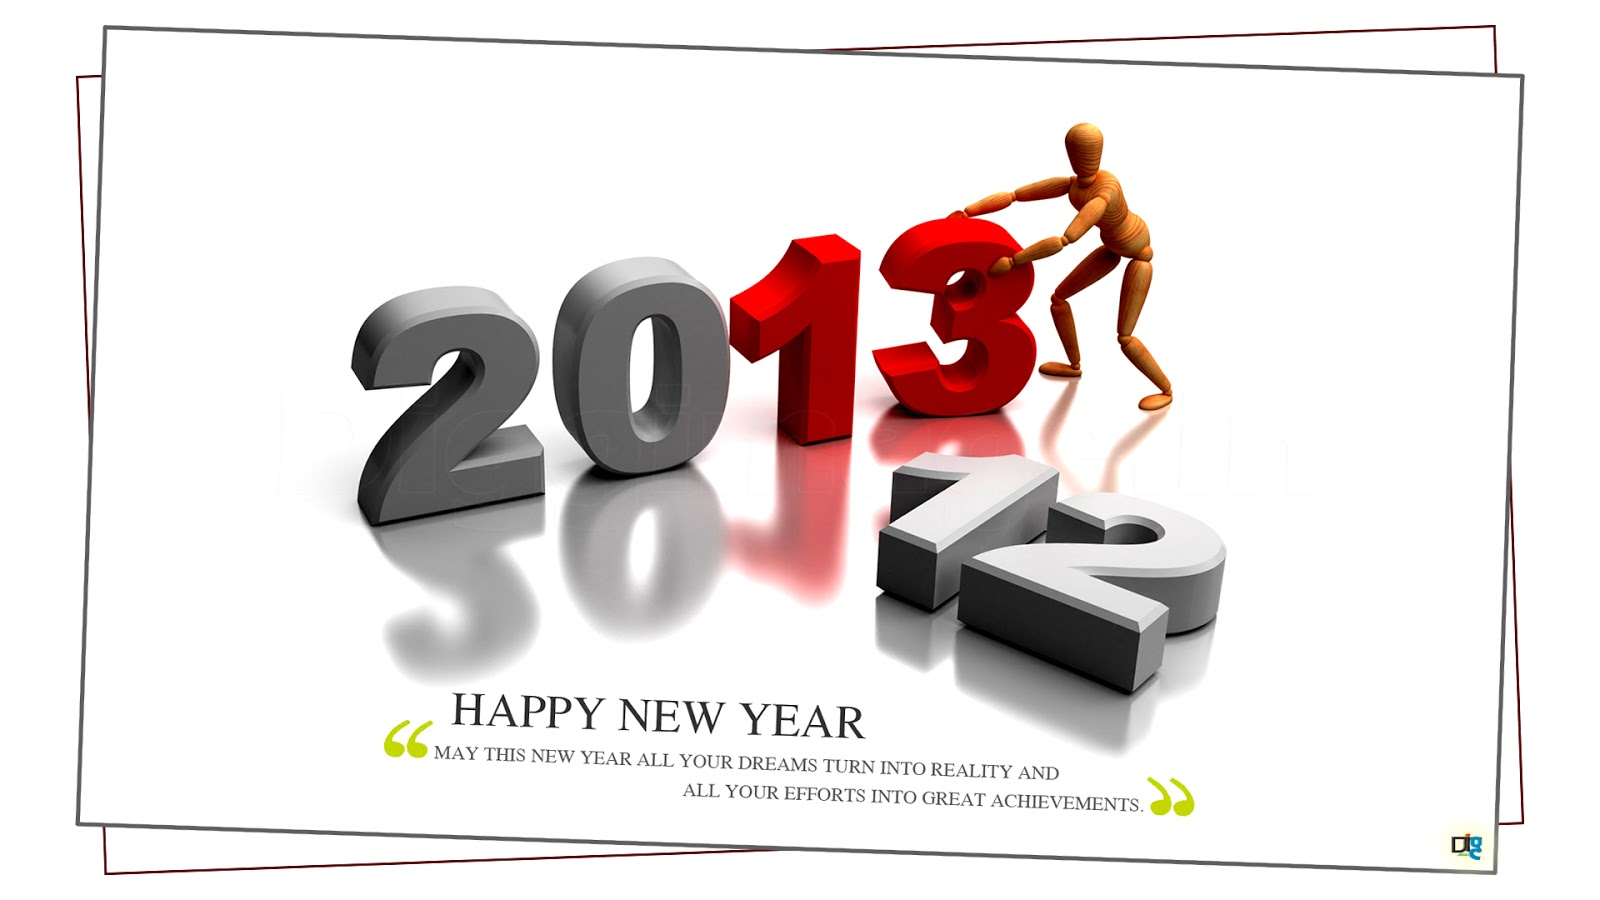 Sms 2013 New Year Greetings May This New Year All Your Dreams Turn In . 1600 x 900.Happy Nice New Year Messages Sms Jokes